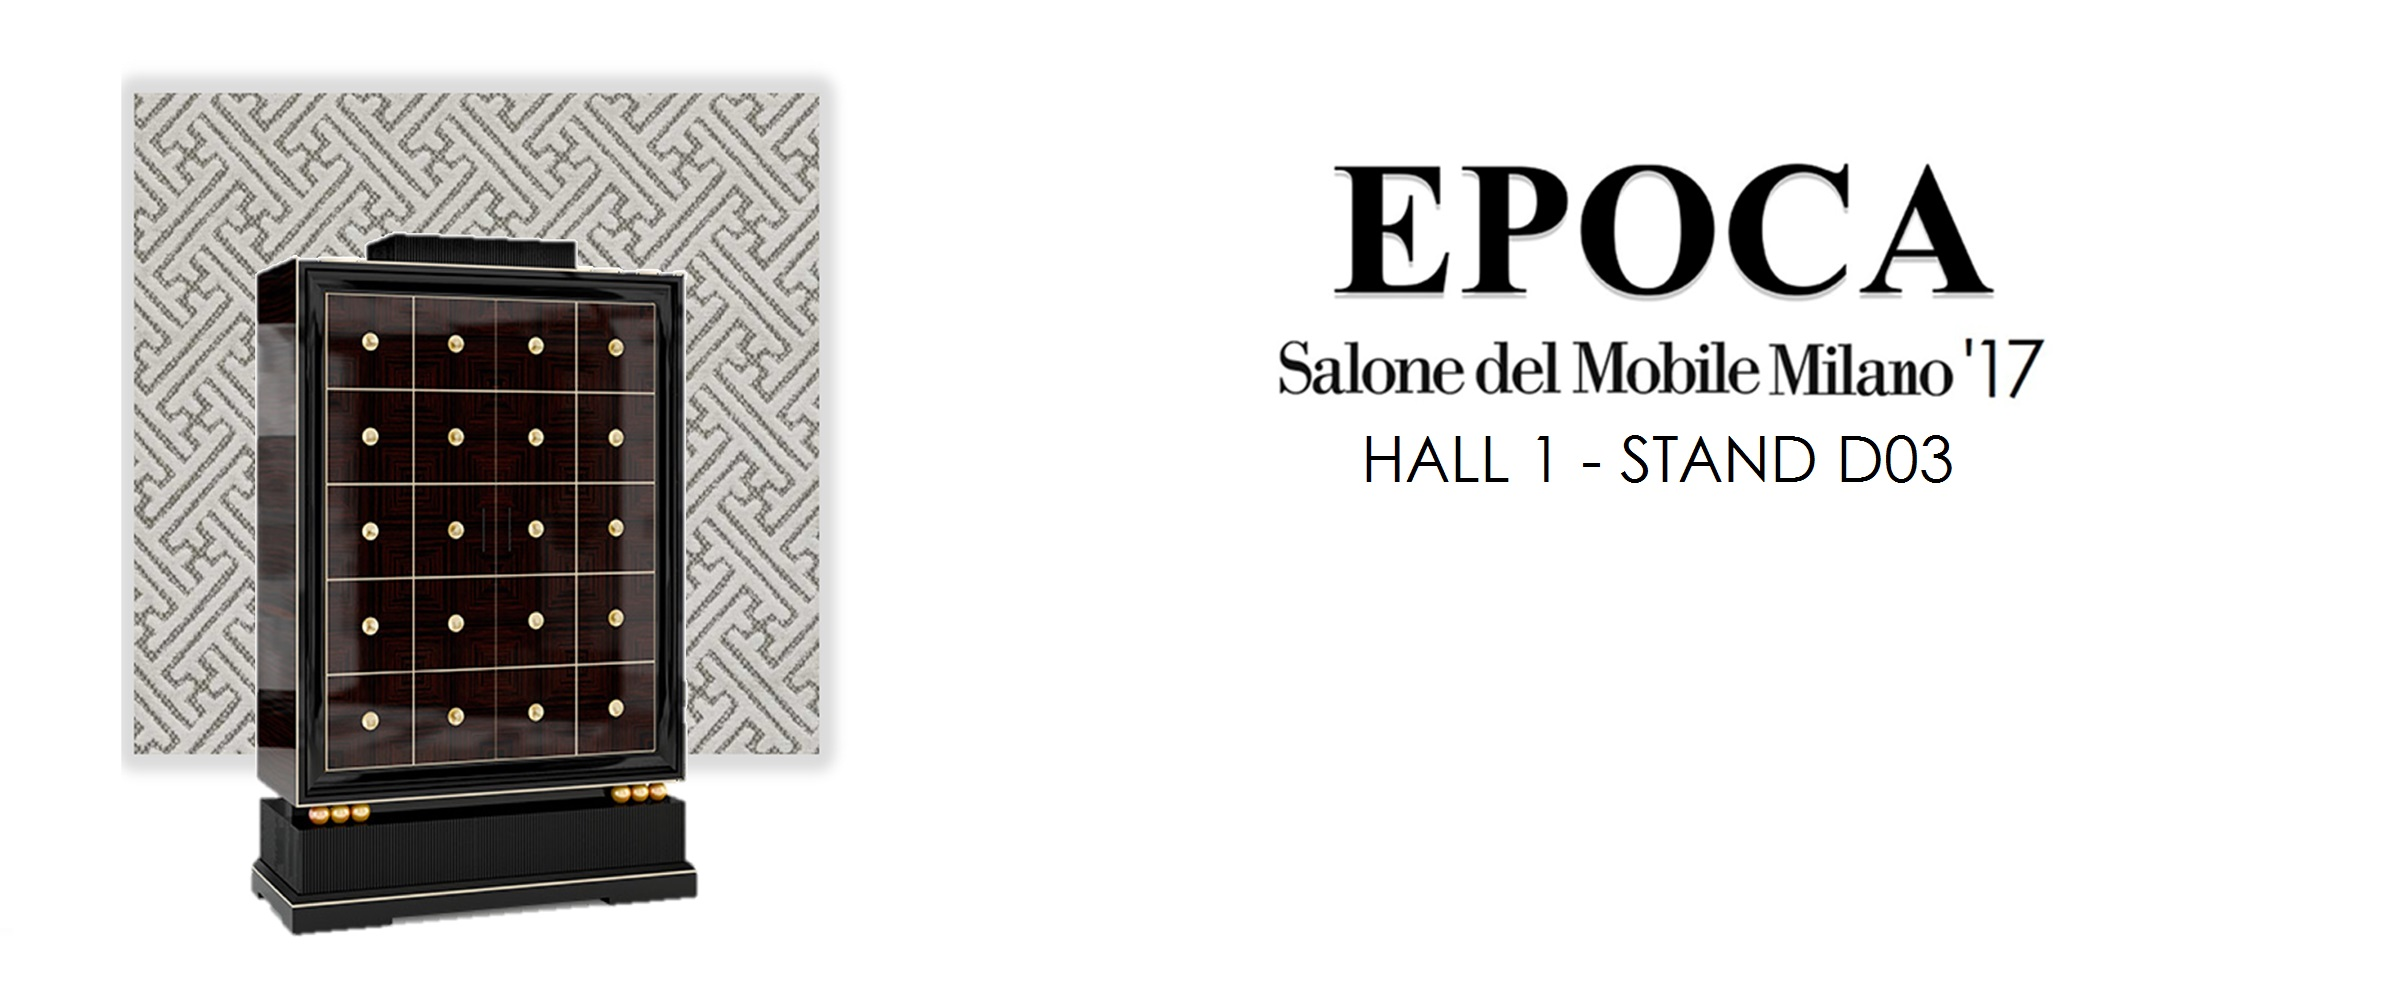 EPOCA IN SALONE MILANO - HALL 1 STAND D03